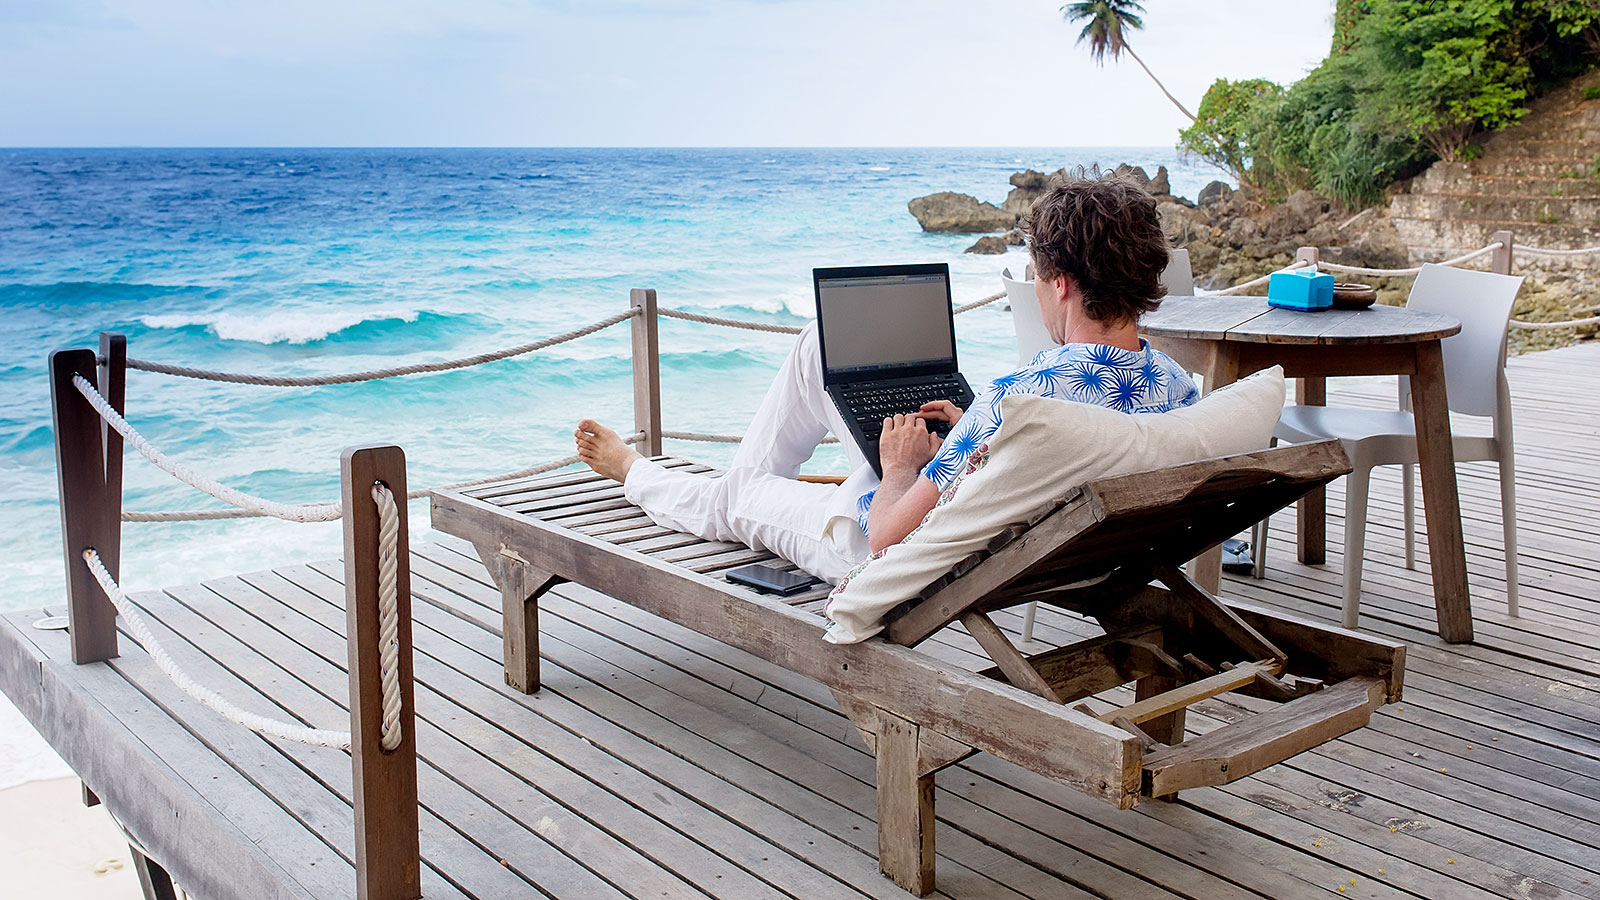 The biggest mistakes entrepreneurs make when planning to be away from their business